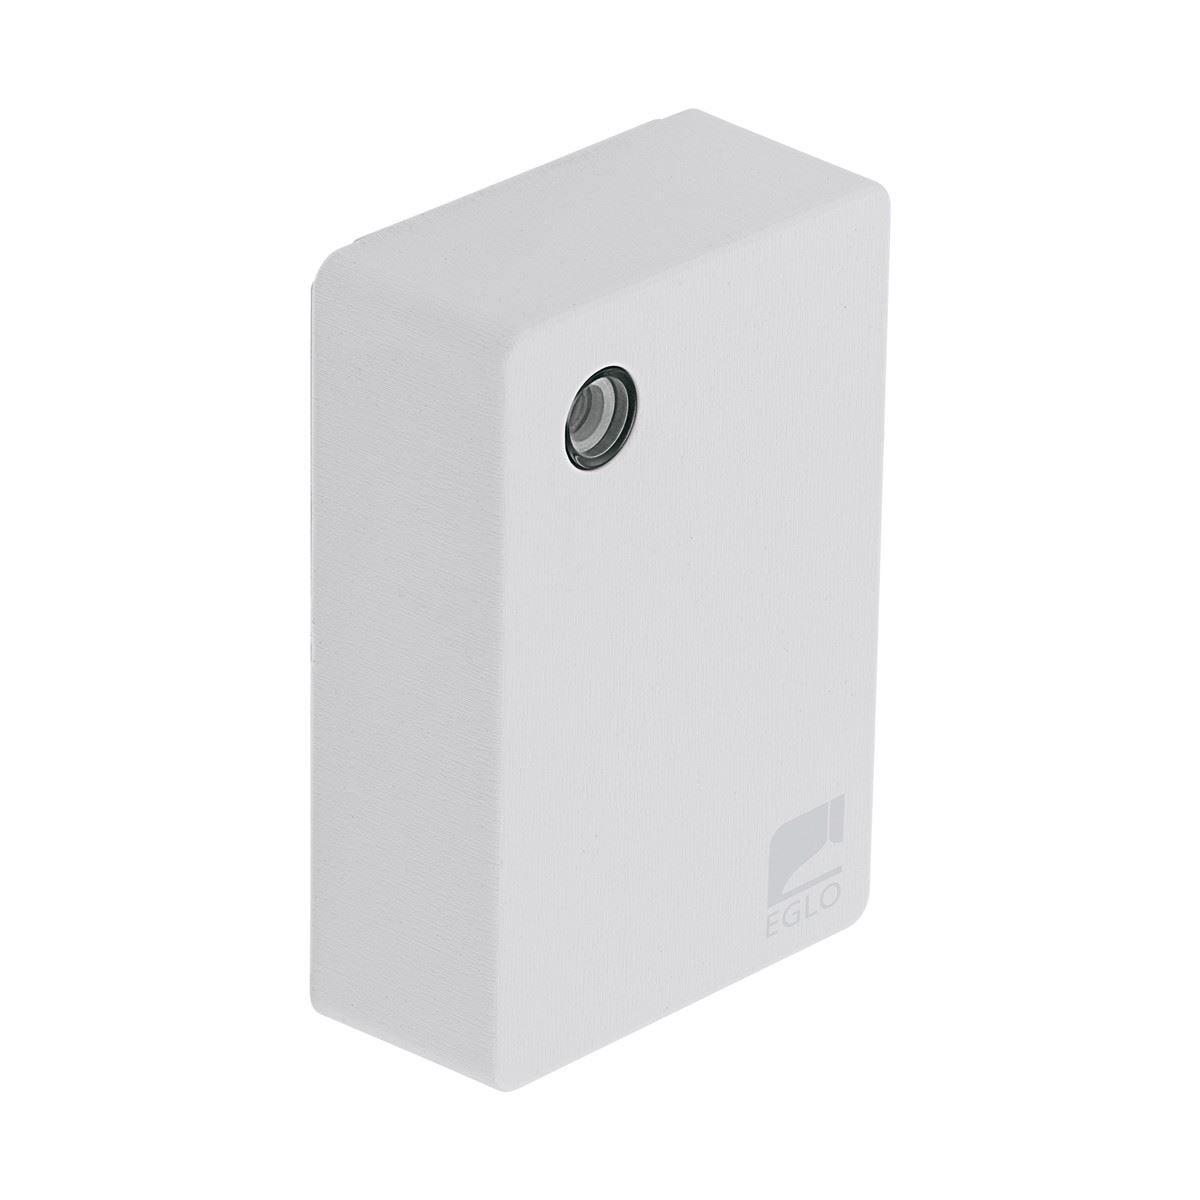 EGLO New Detect Me Pir Sensor In White